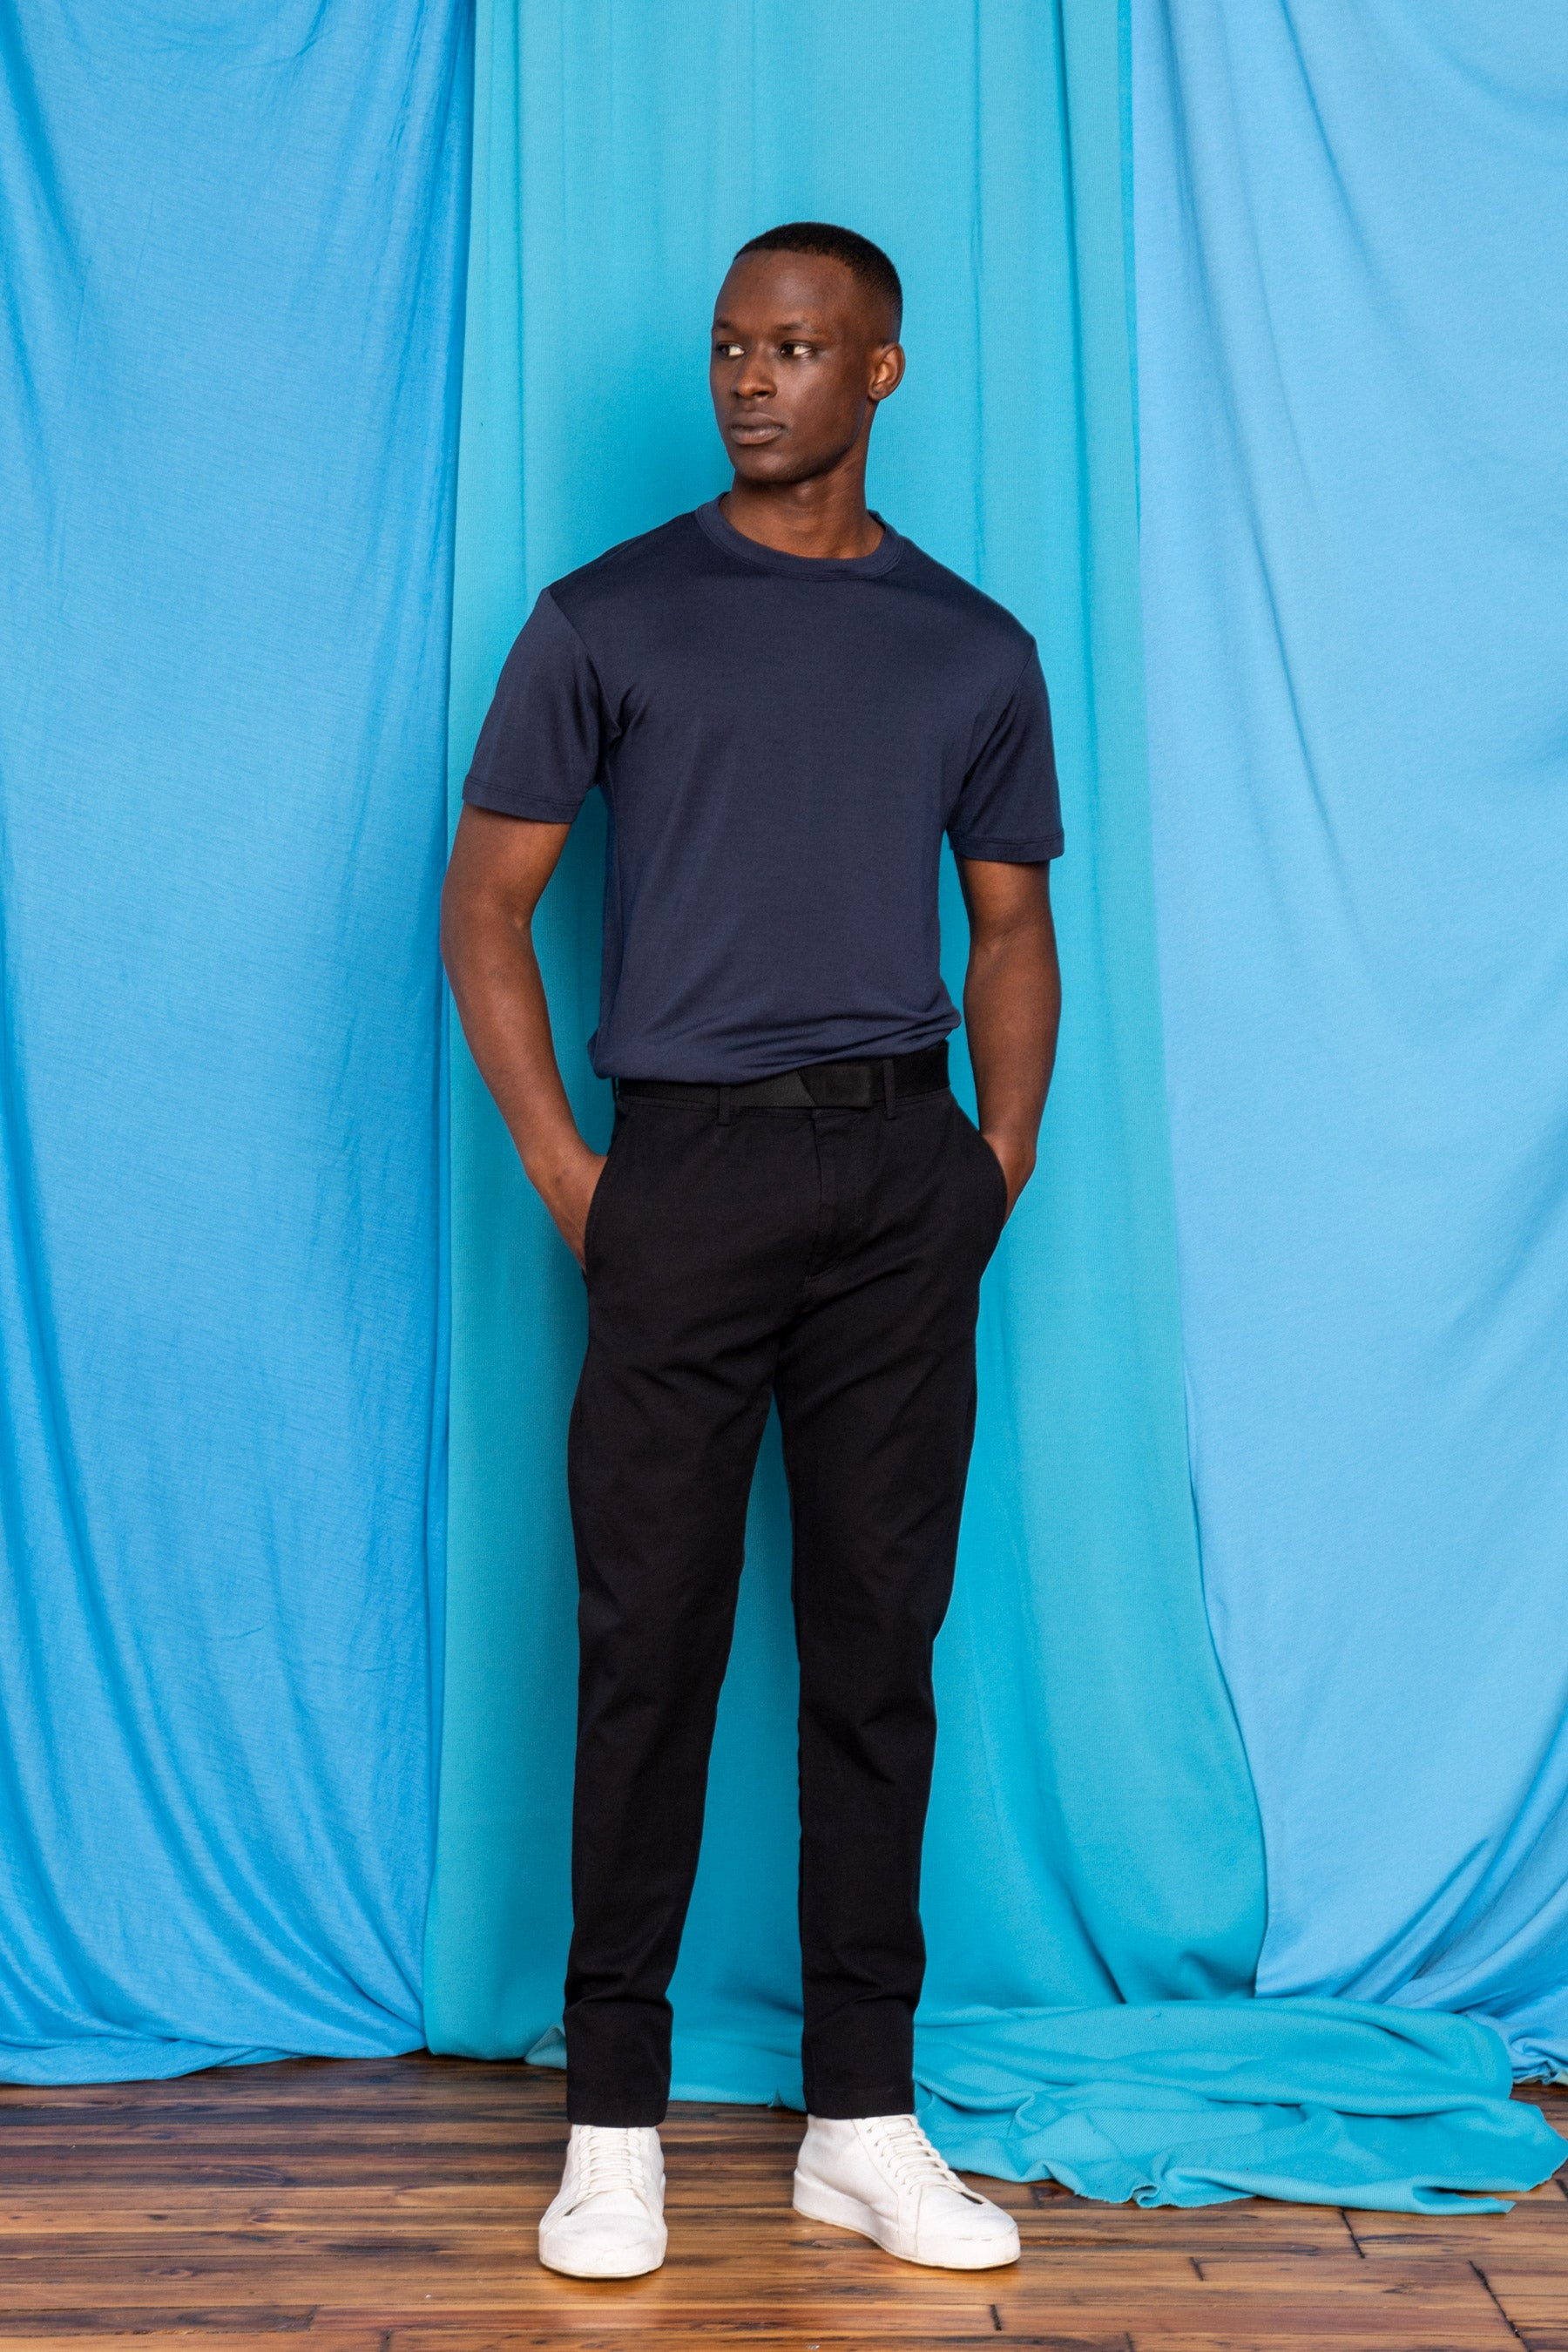 Torey in the Black Free/Co Darts, Navy Ultrafine Merino Cut Two T-Shirt, and Polyamour Belt, front view